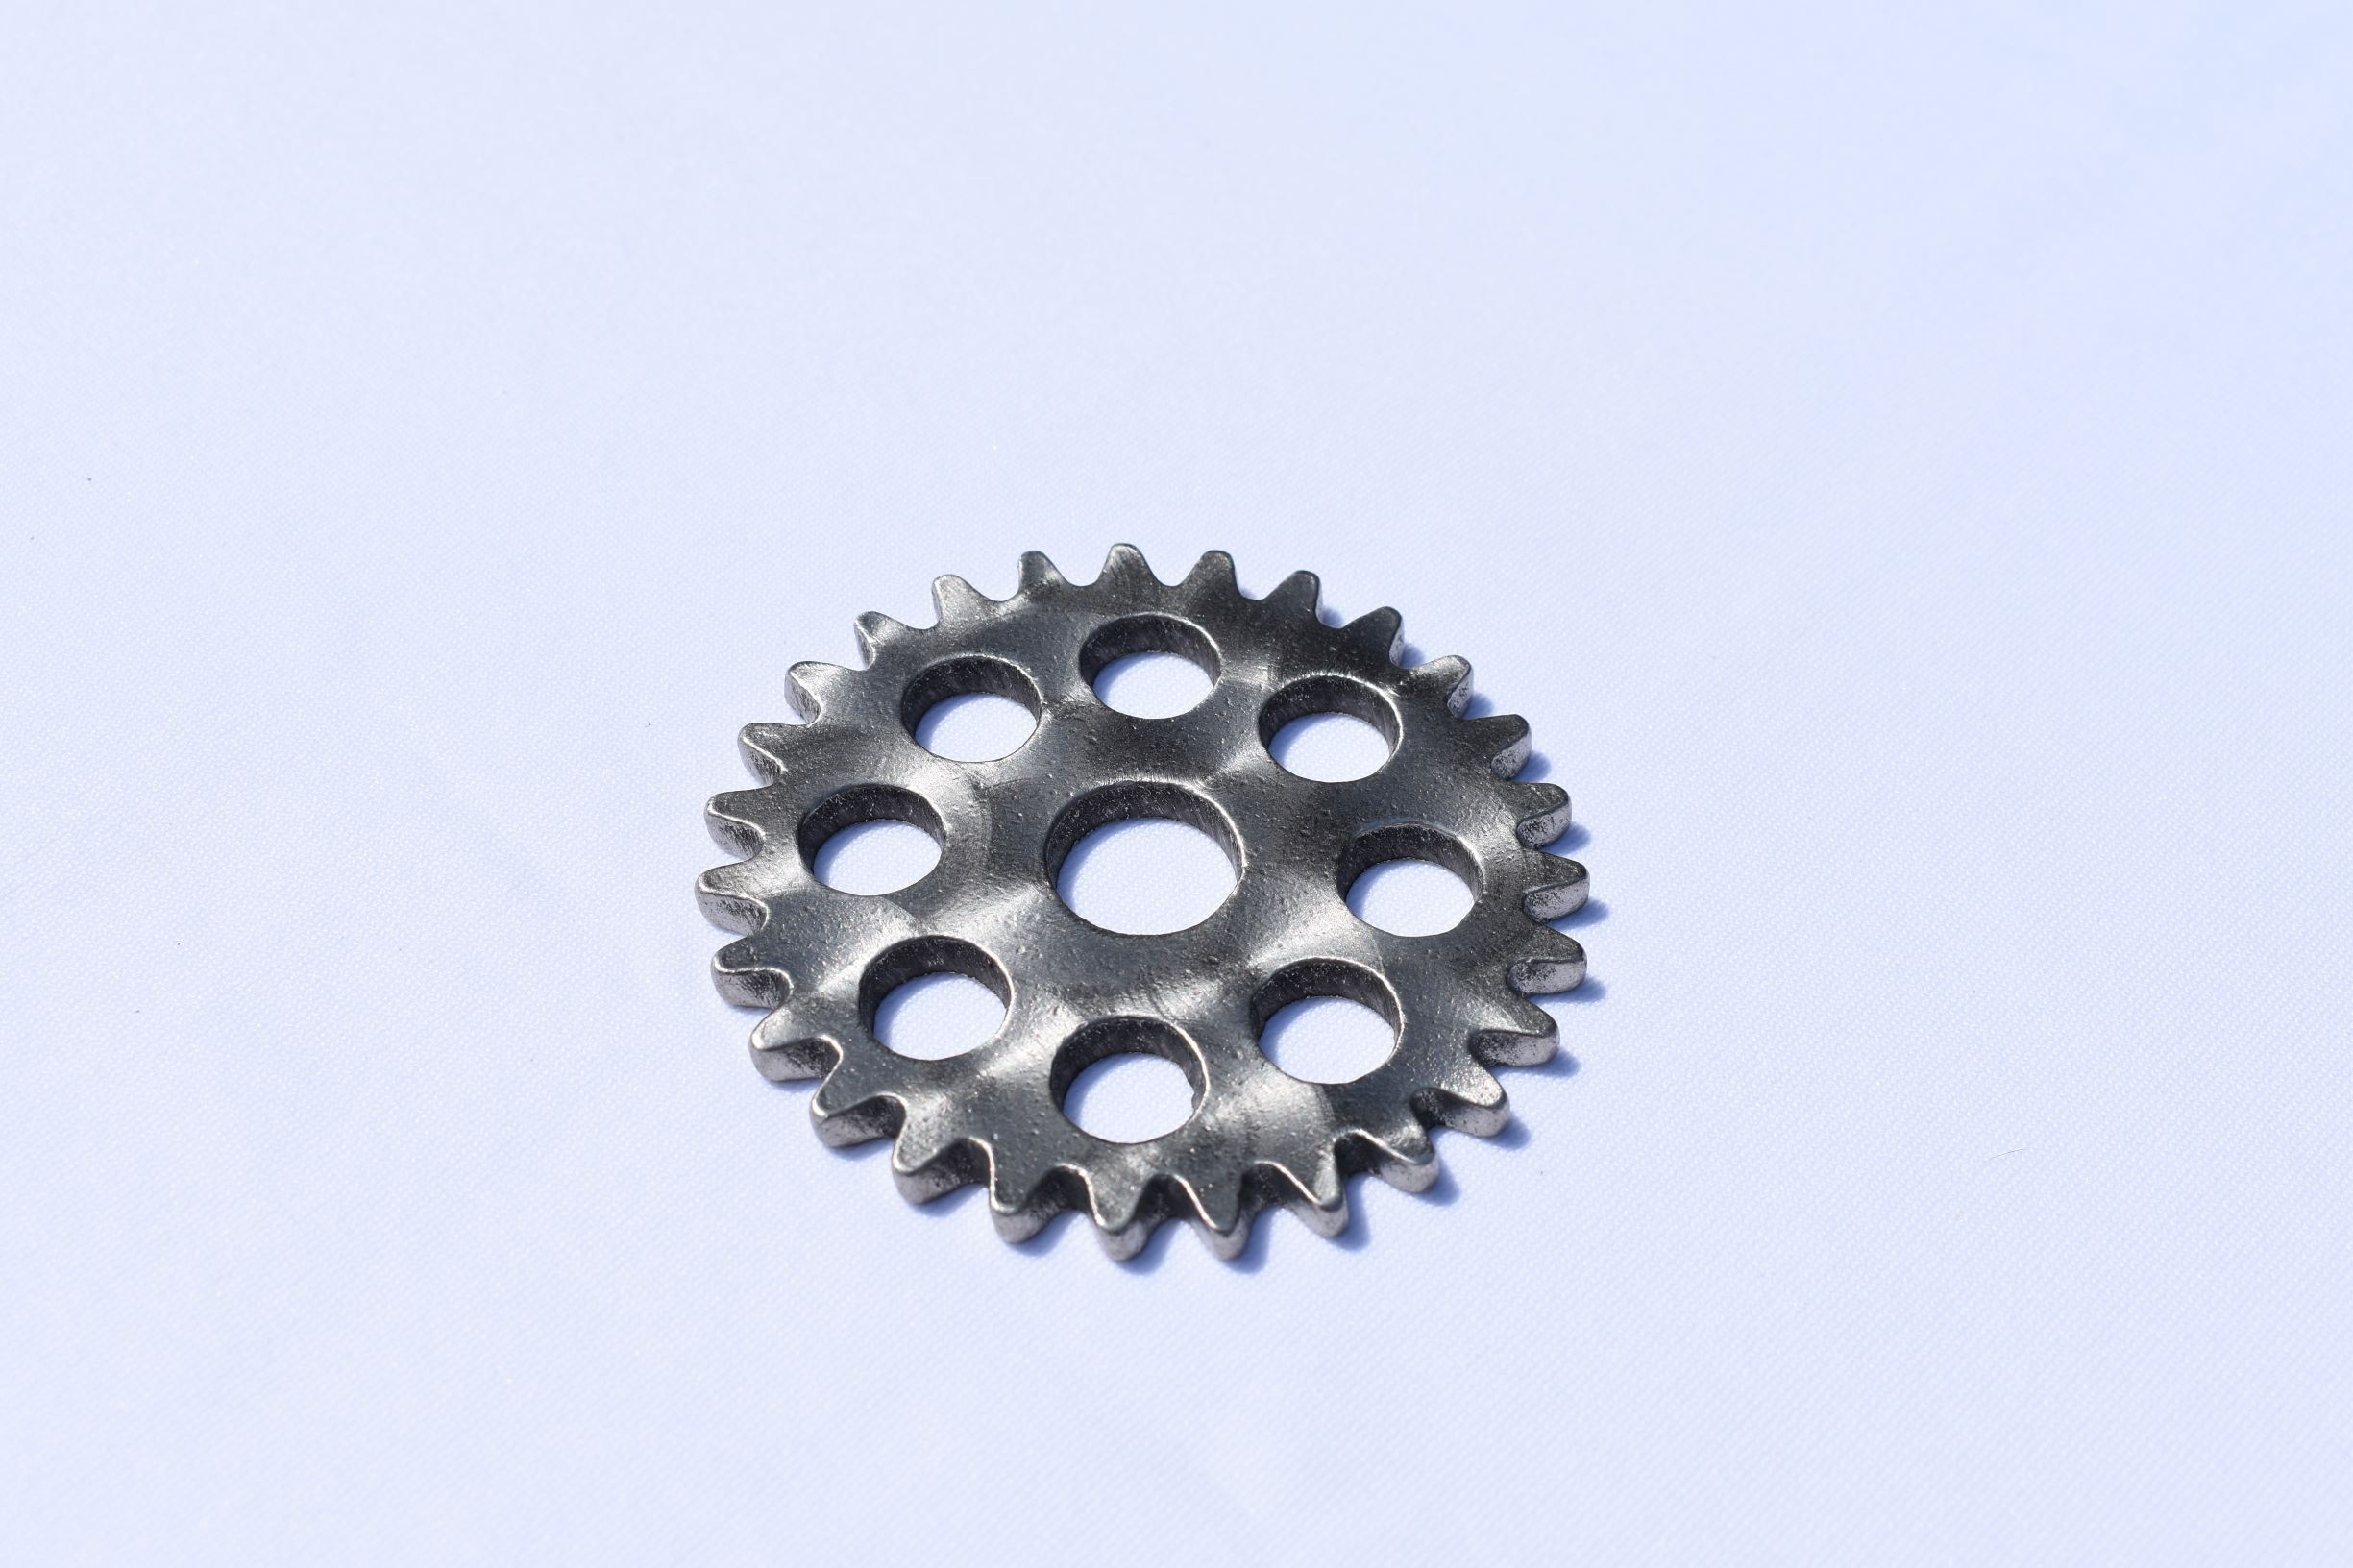 Coasters - Stainless Steel Gears Third Shift Fabrication Small